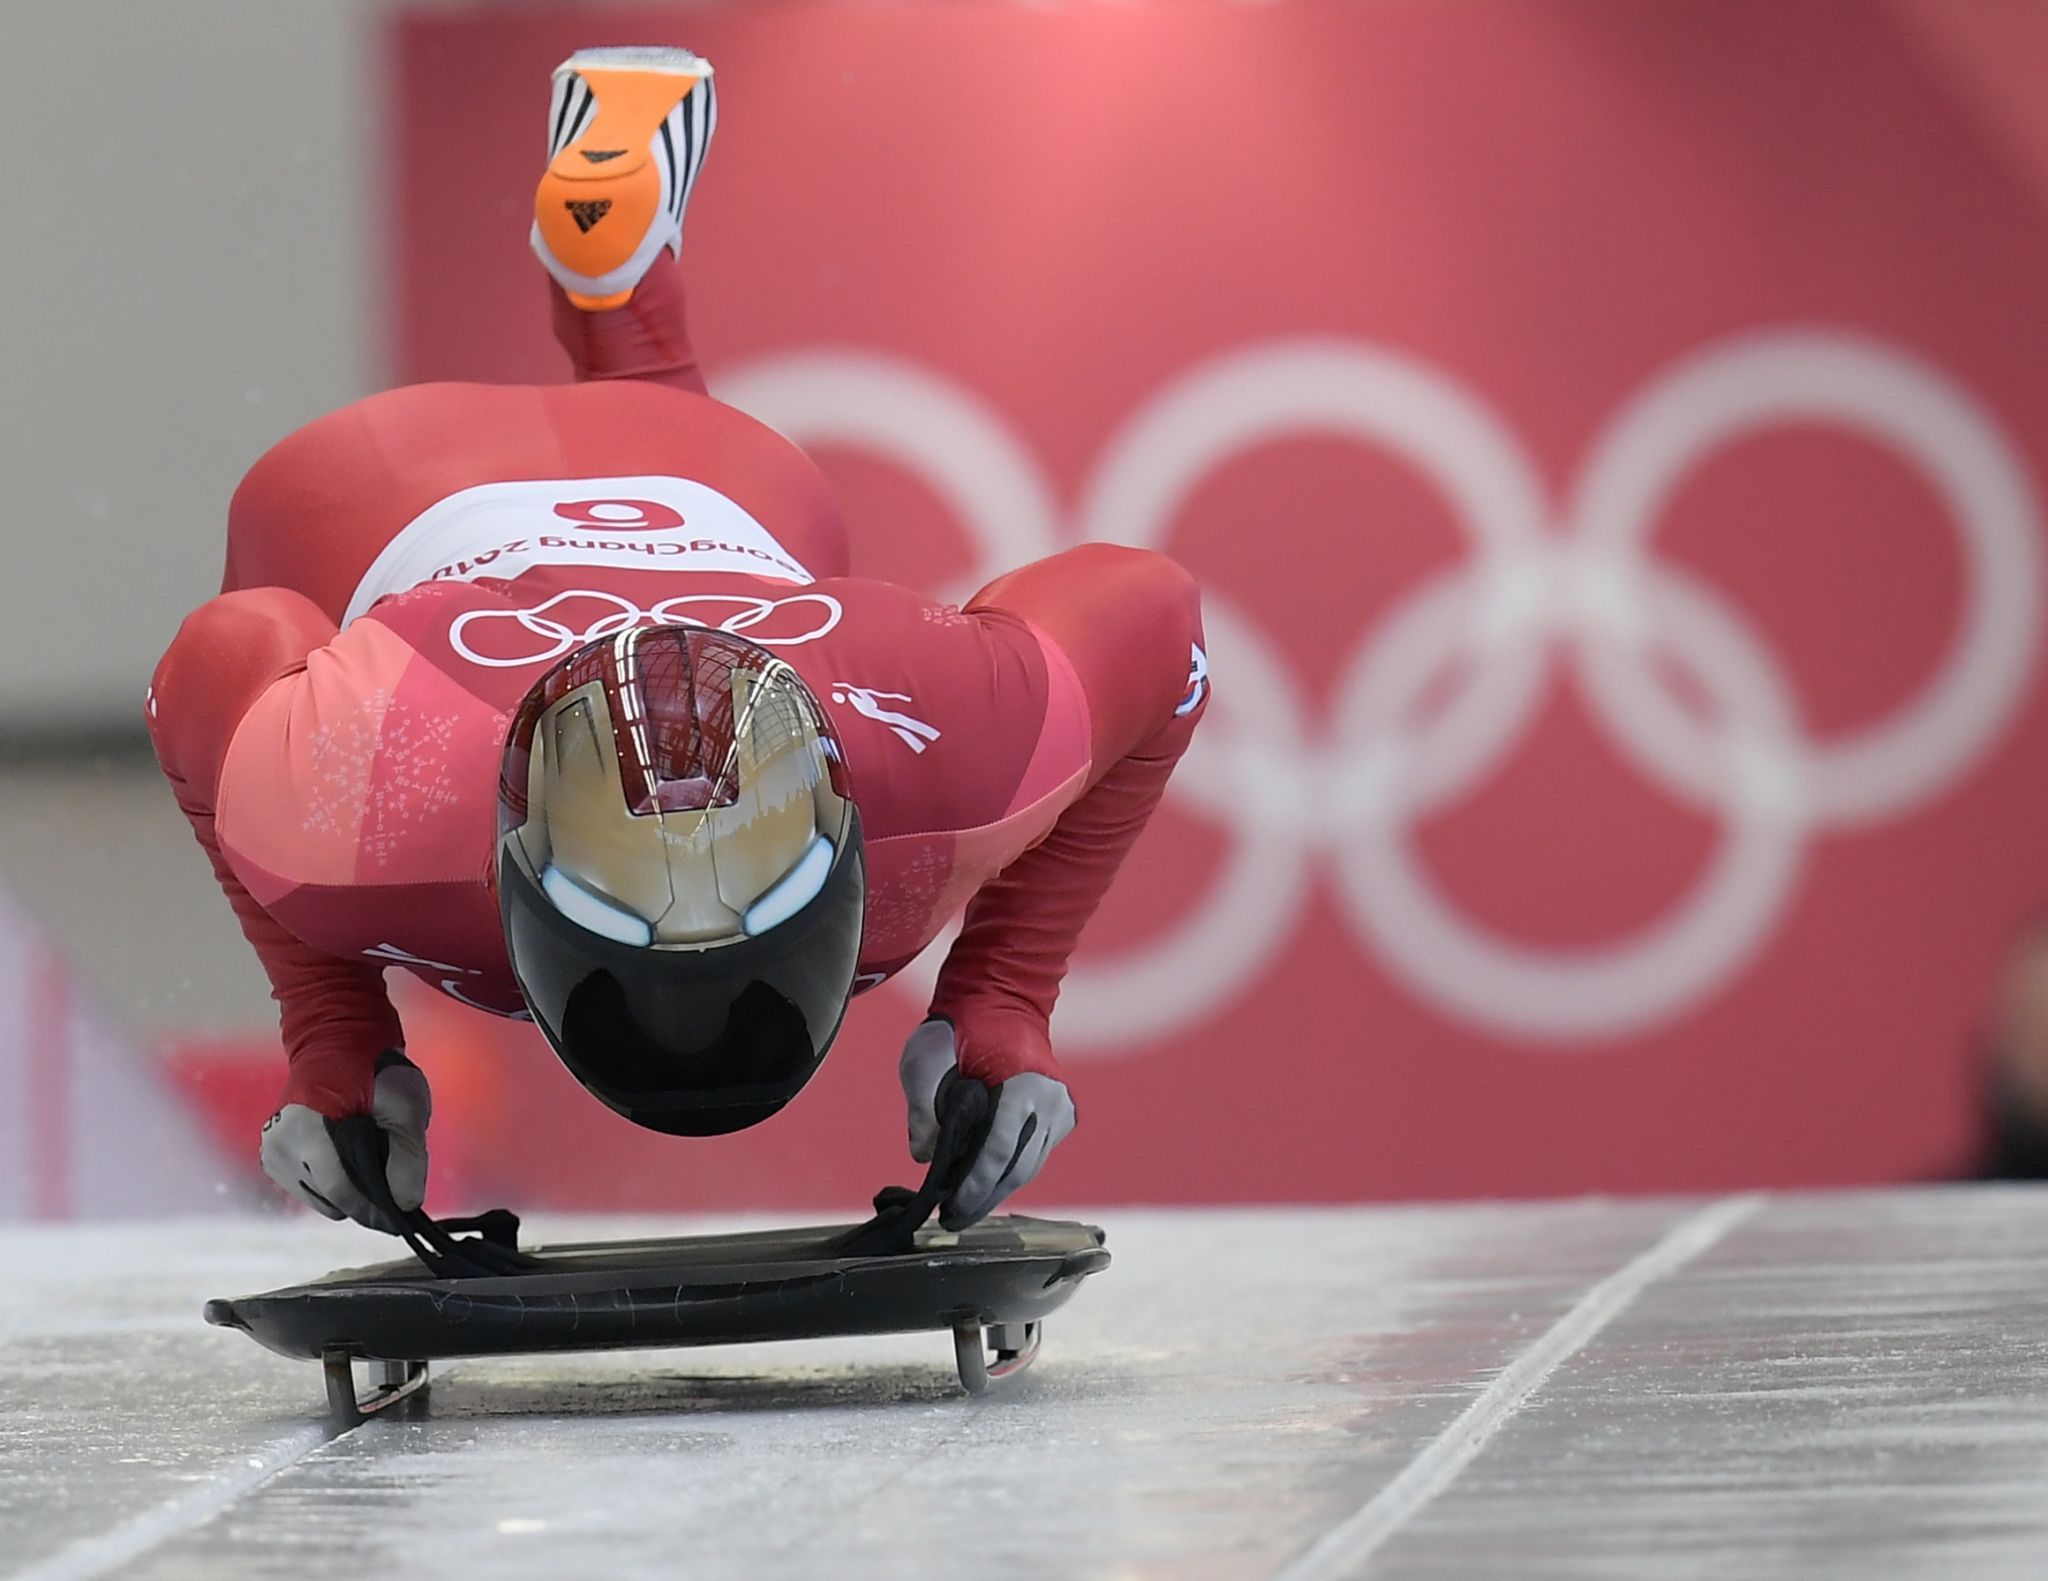 Skeleton athletes are wearing some very cool helmets